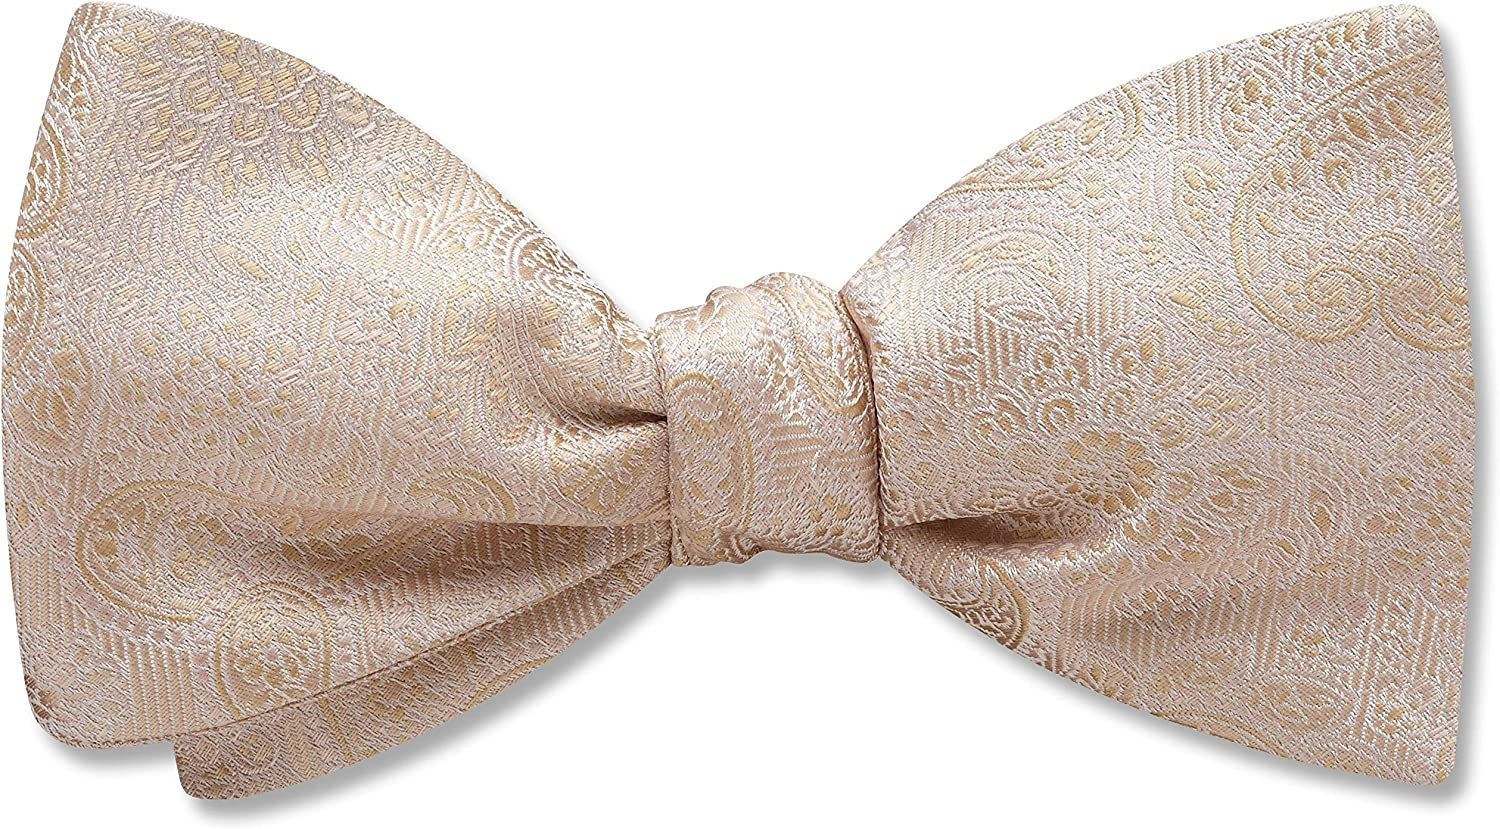 Pembroke Champagne White Paisley, Men's Bow Tie, Handmade in the USA